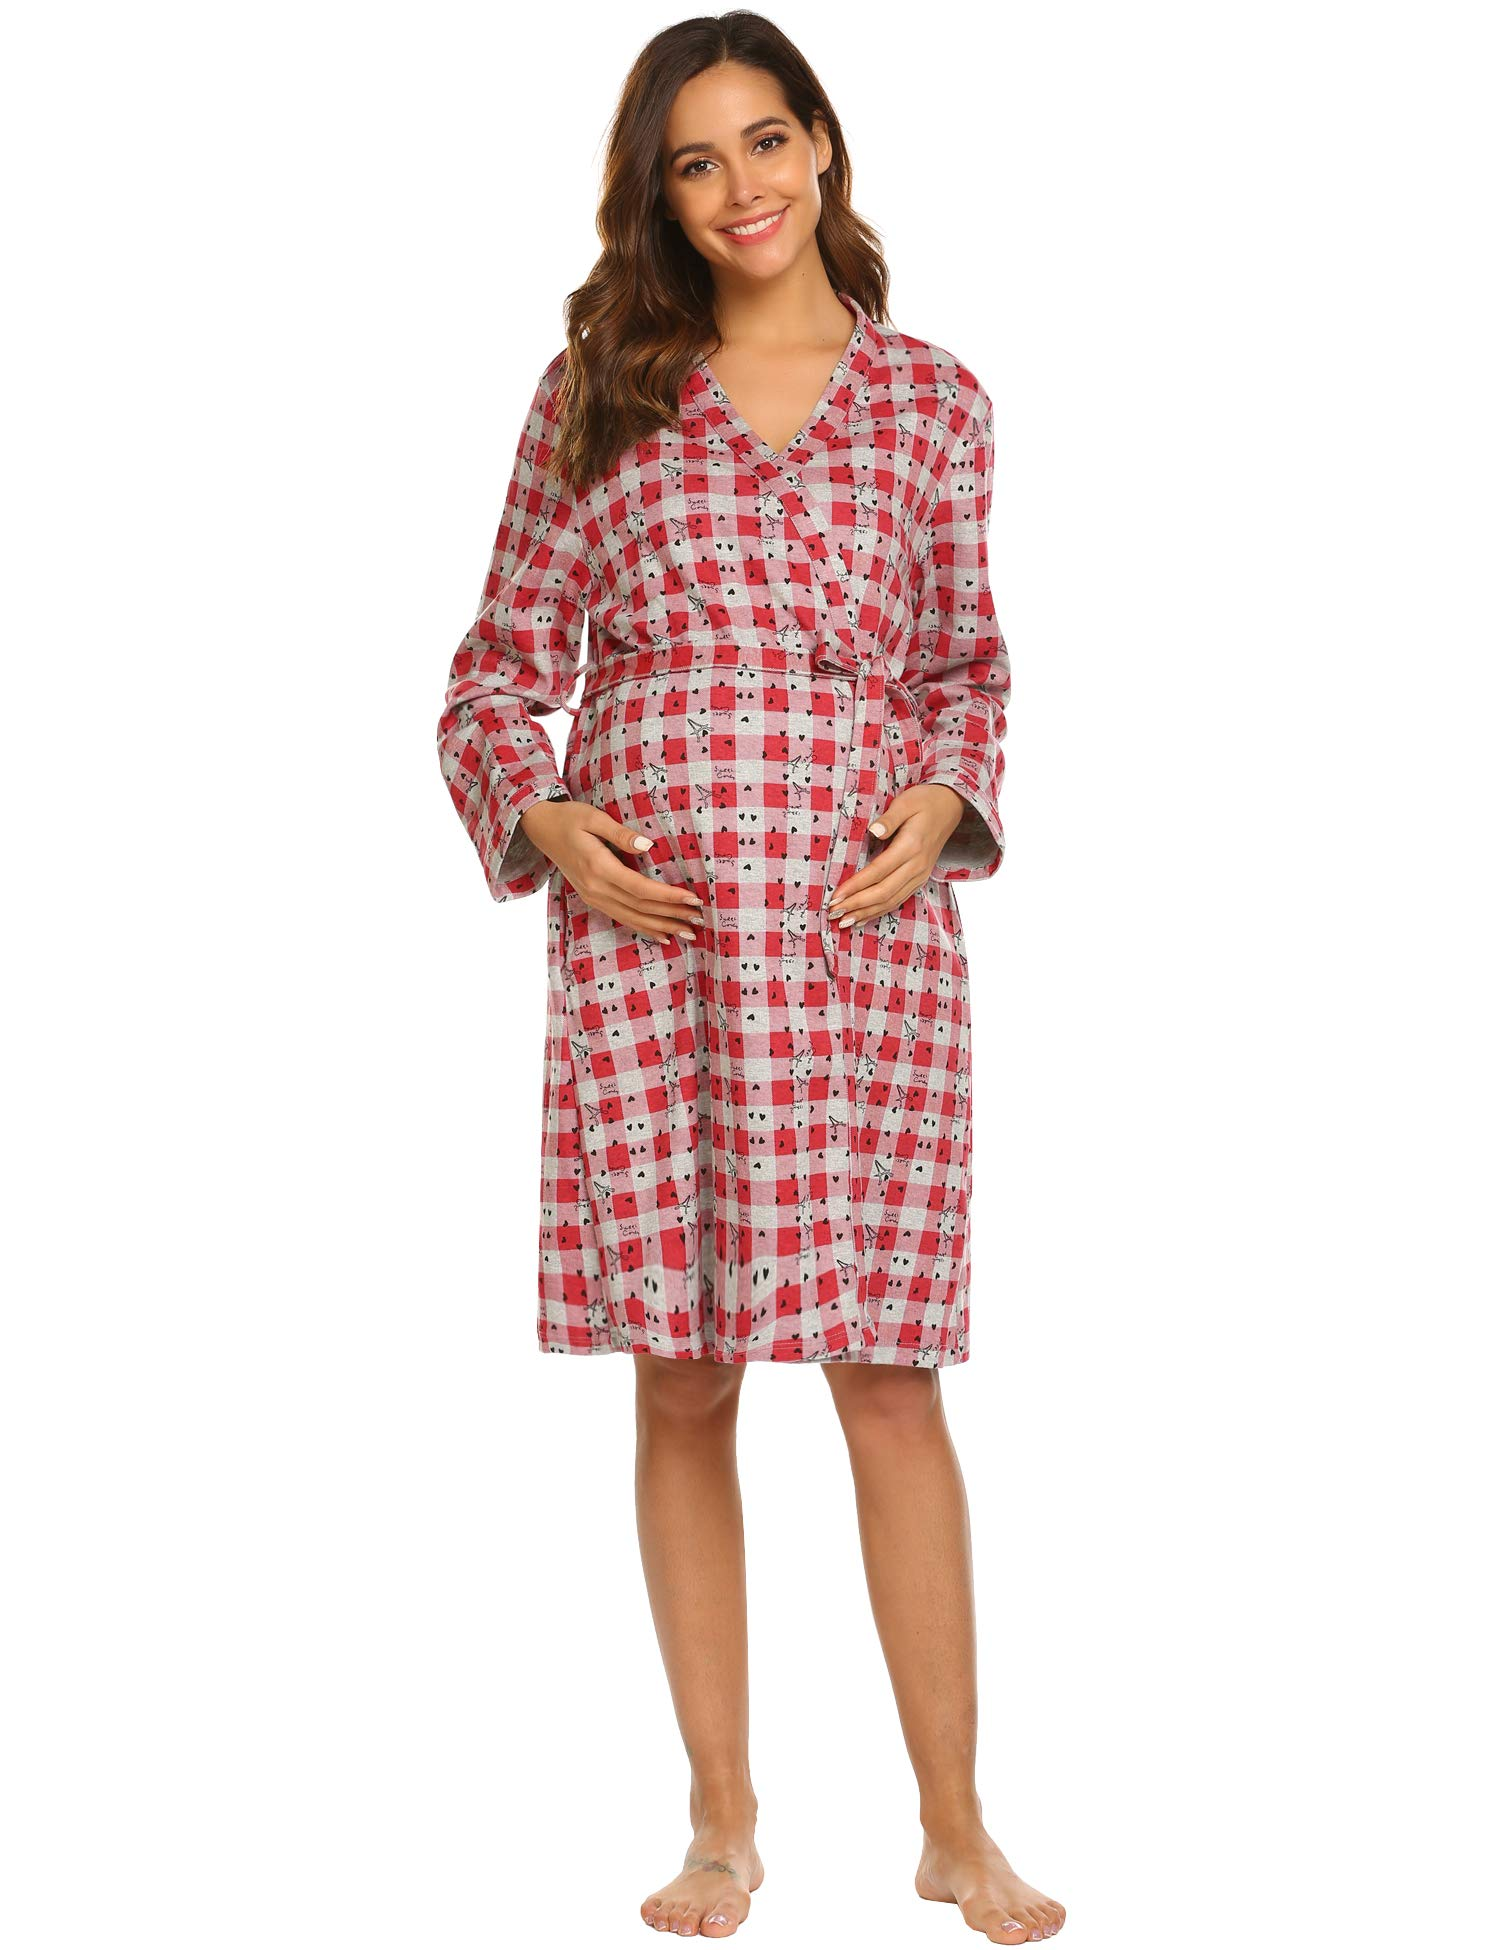 Ekouaer Womens Cotton Maternity Robe V Neck Labor and Delivery Print Kimono Nightgowns Sleepshirts for Breastfeeding